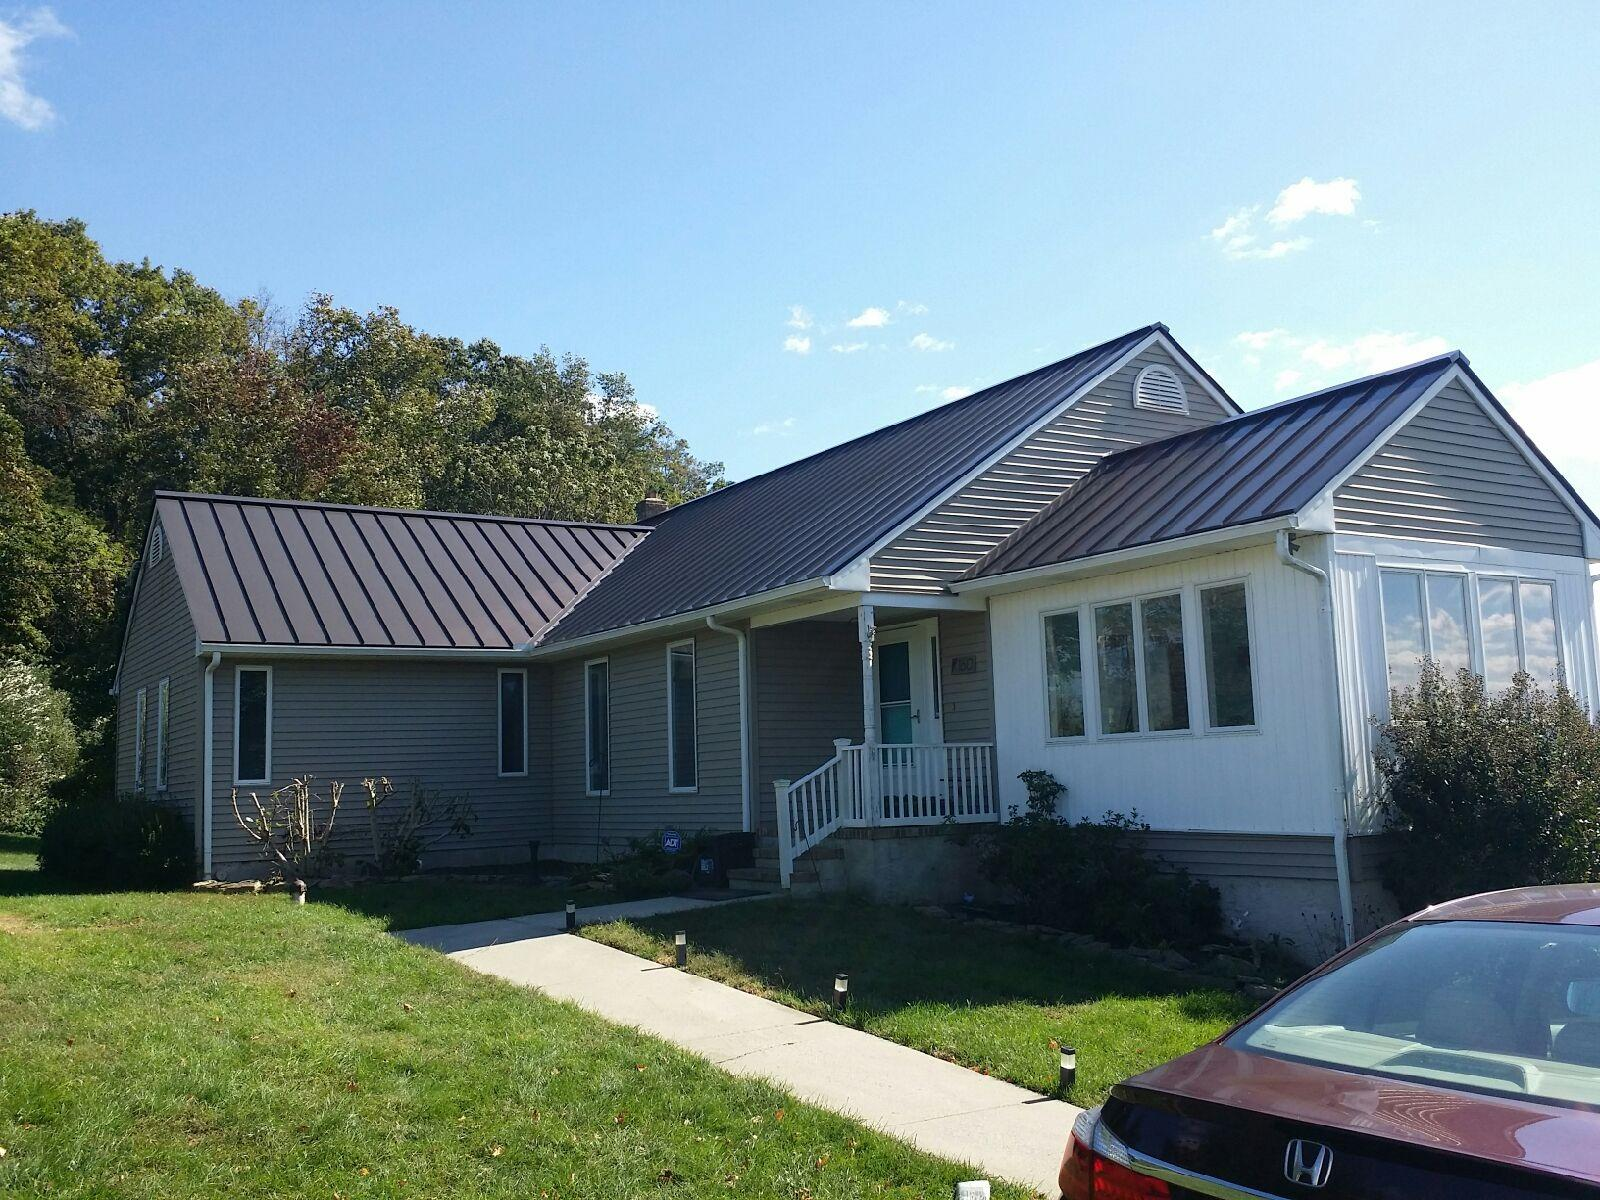 Replacing Aging Asphalt Shingles with Dark Bronze Standing Seam Metal Roof on Greenwich, NJ Home - After Photo